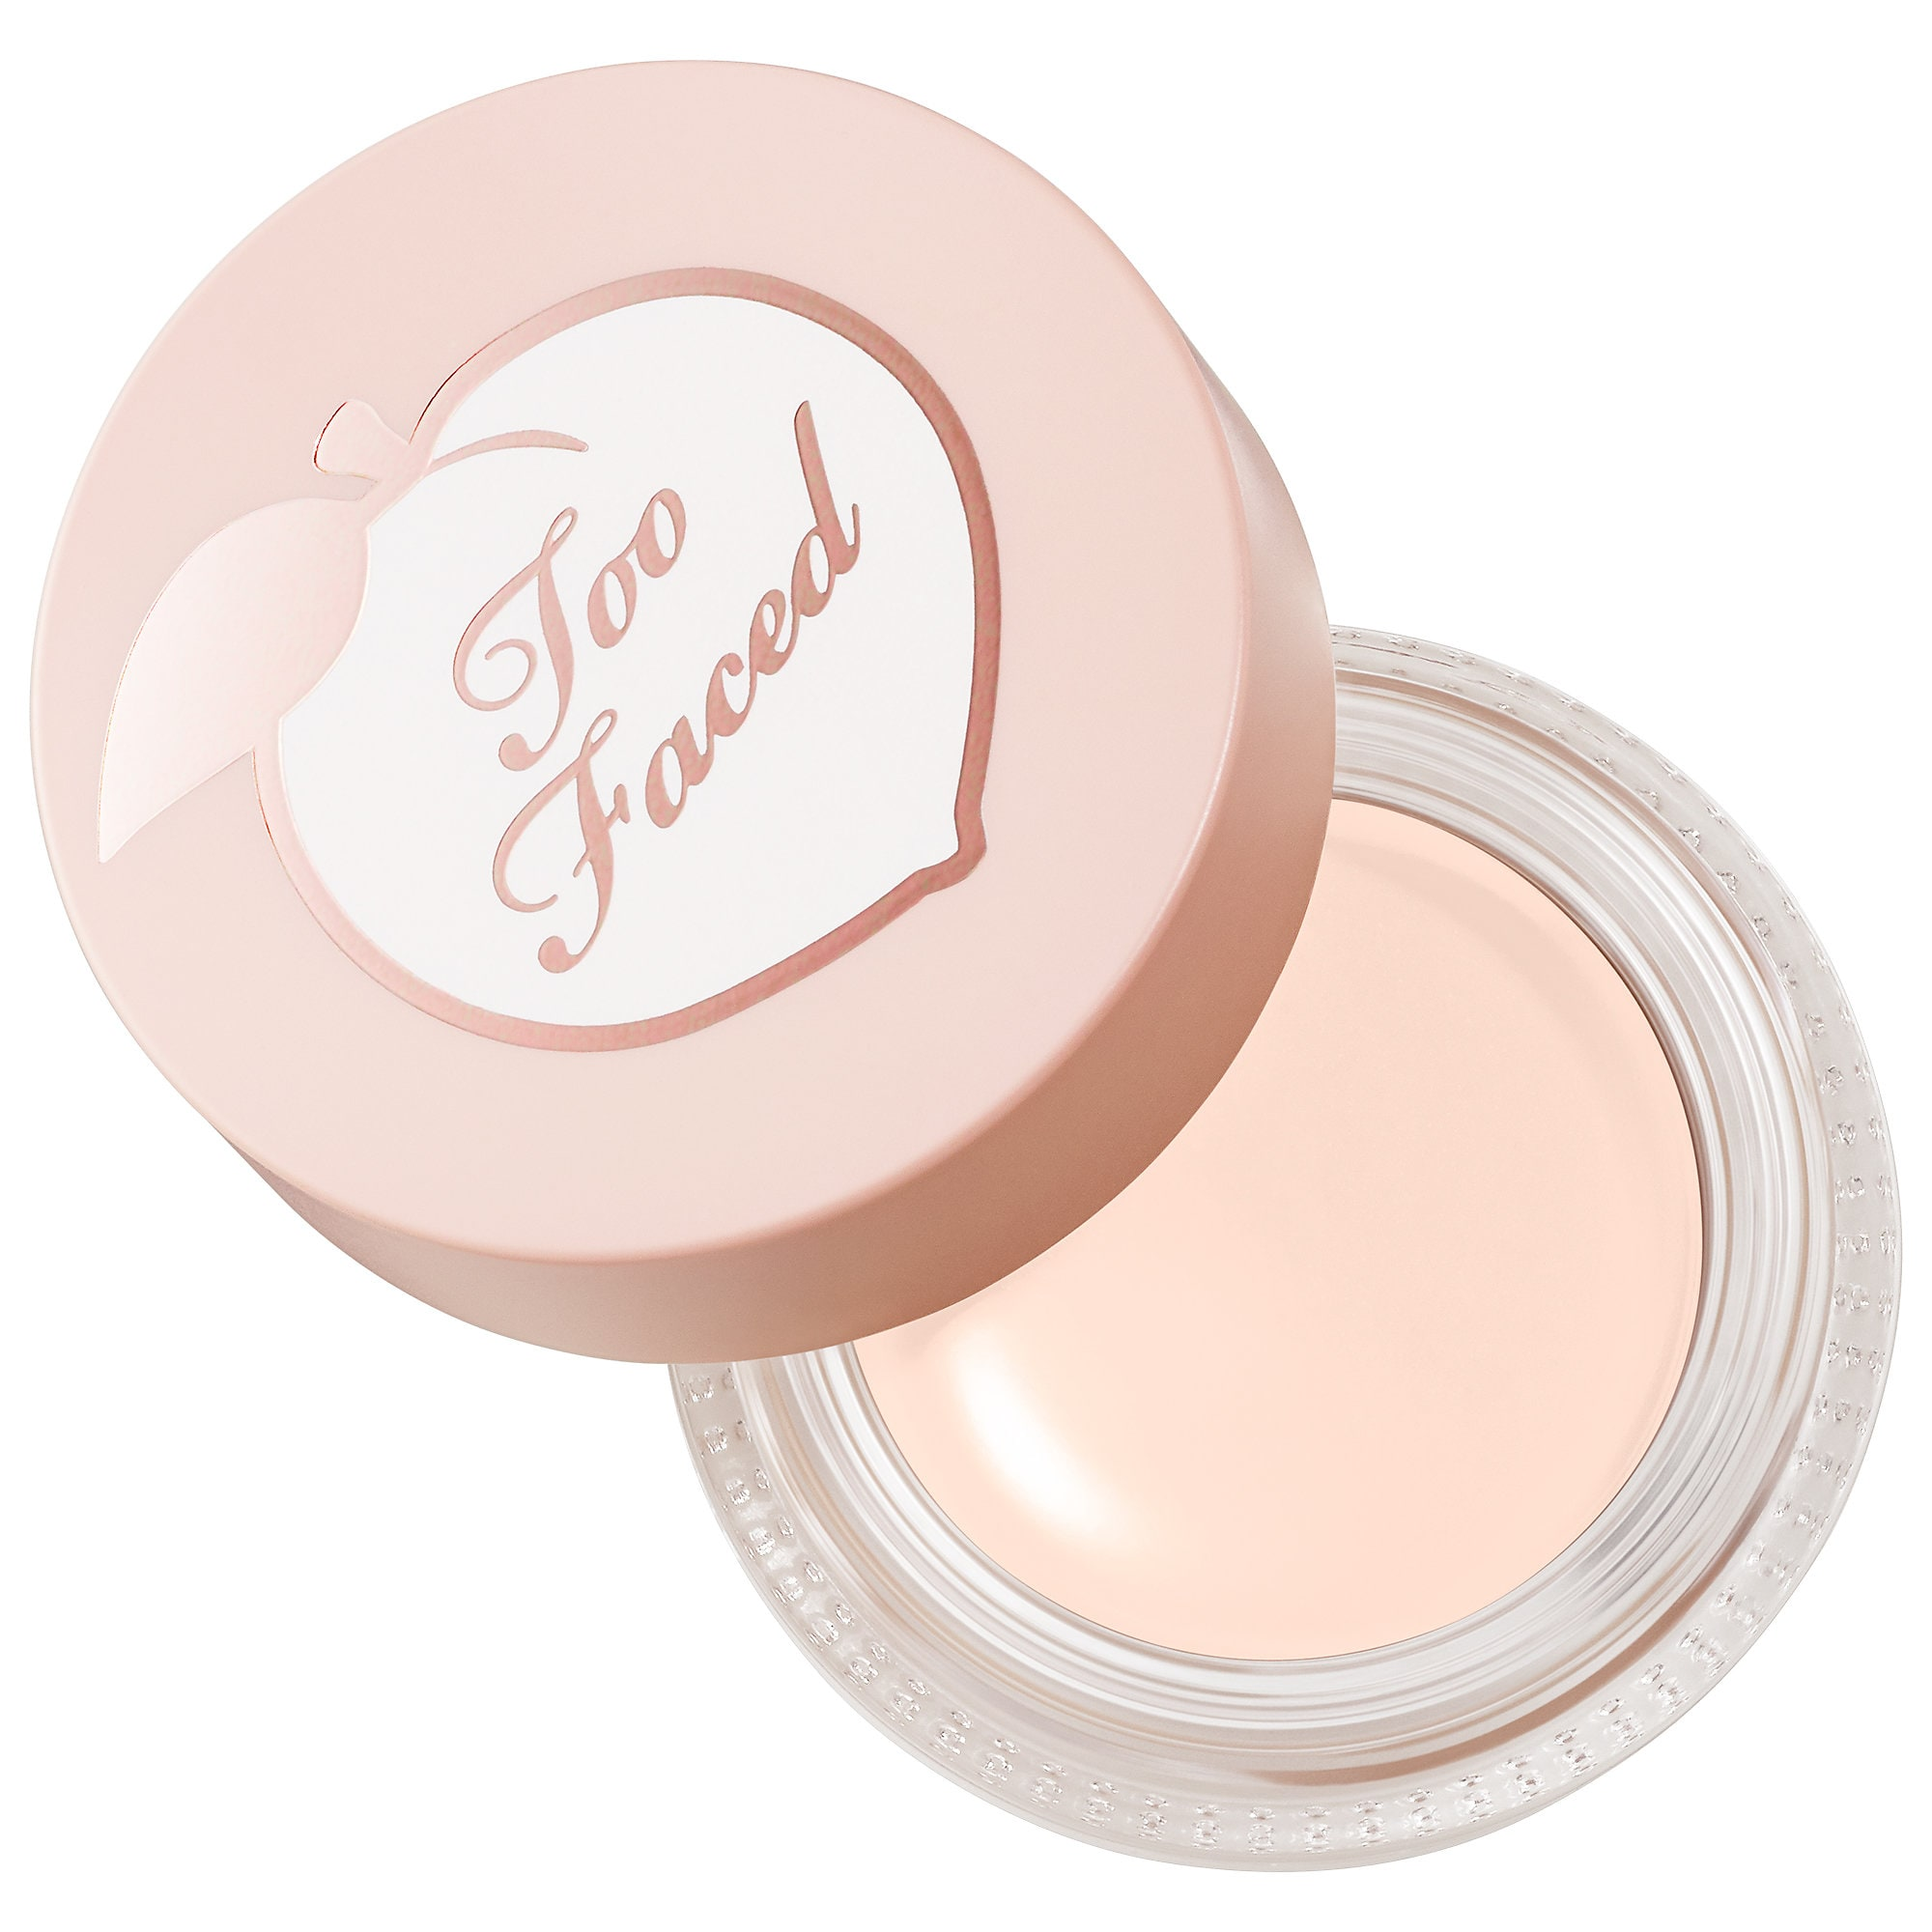 Too Faced - Peach Perfect Instant Coverage Concealer - Peaches and Cream Collection